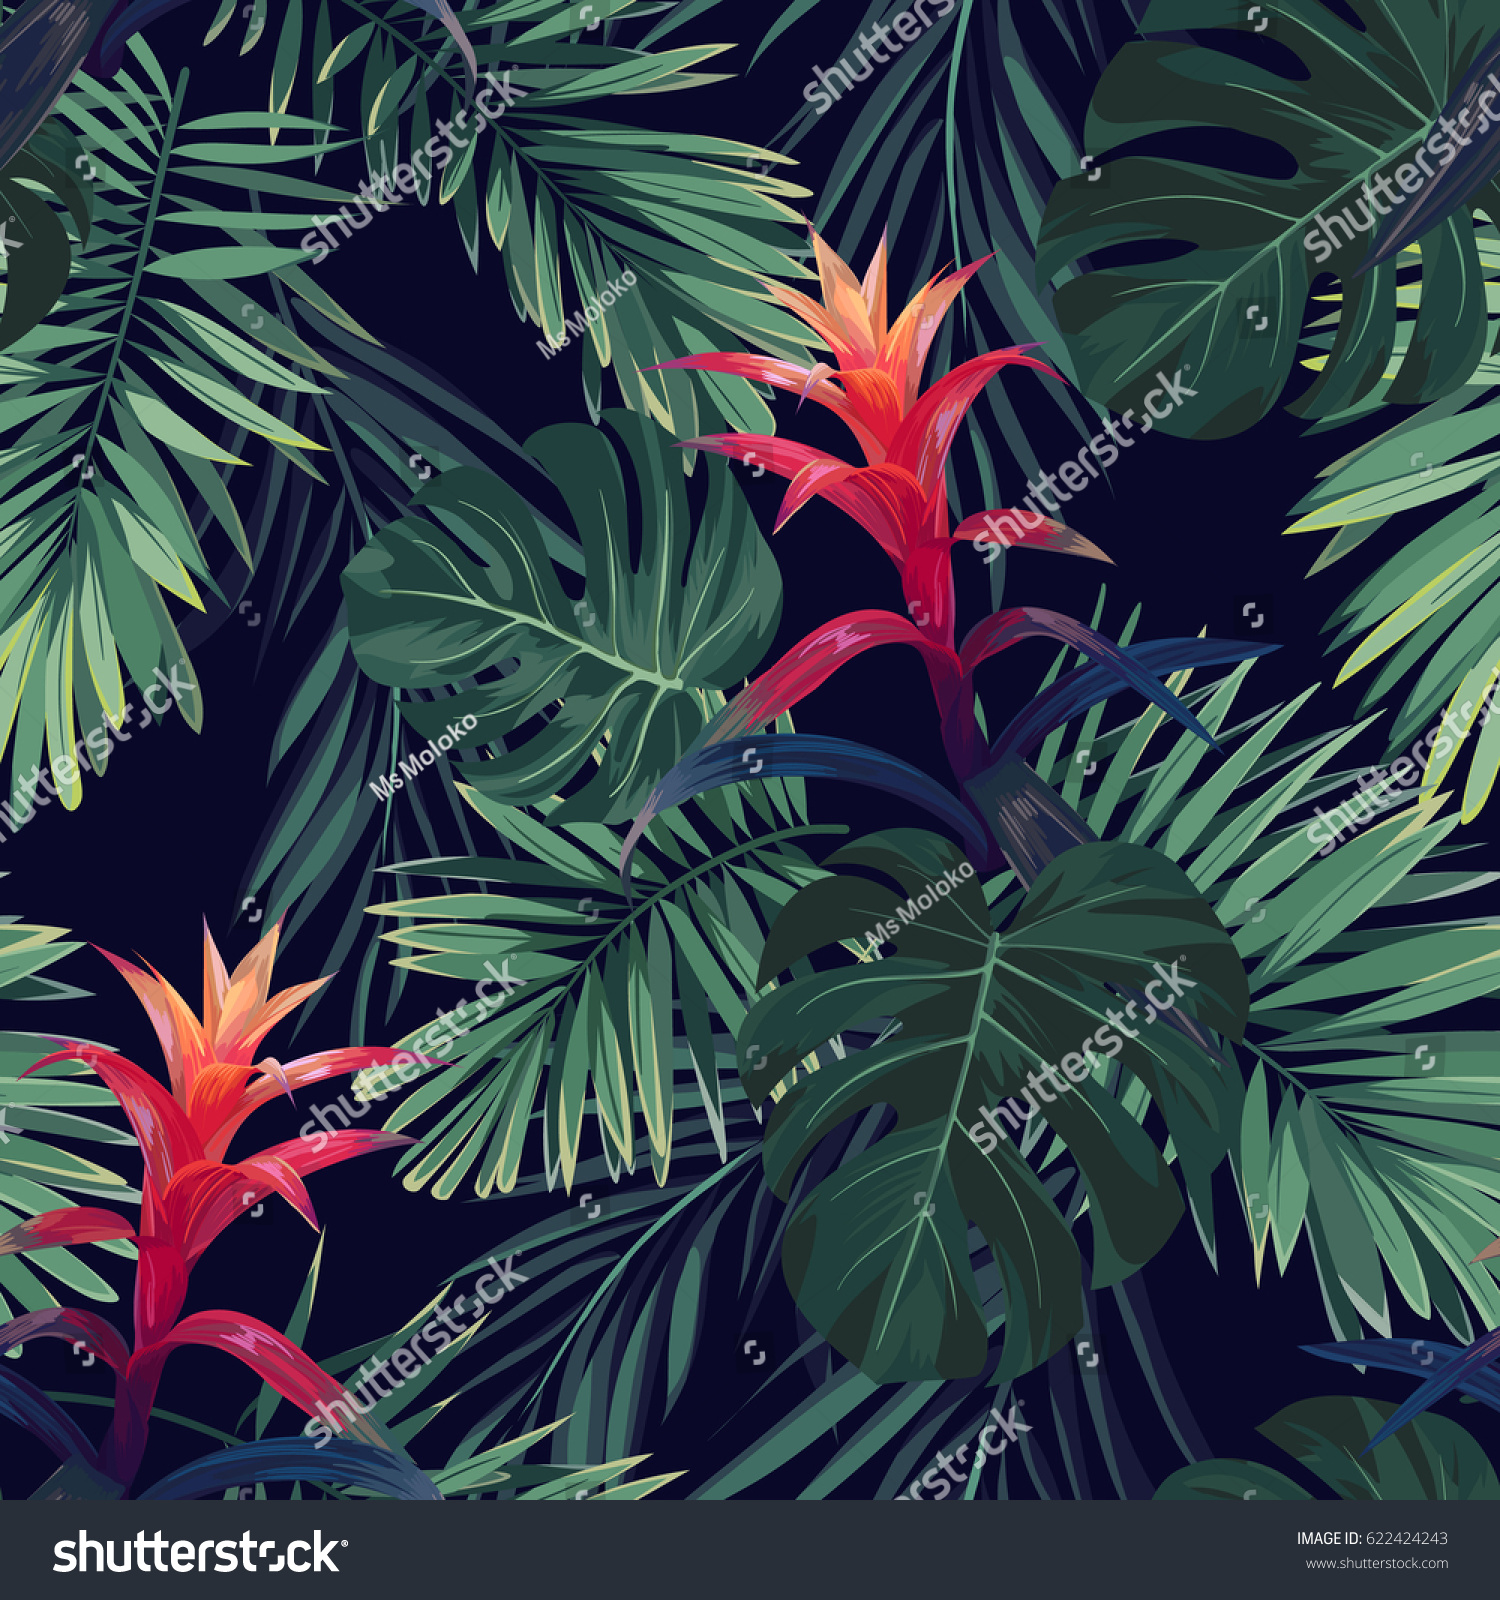 Hand drawn seamless floral pattern with guzmania flowers monstera and royal palm leaves exotic hawaiian background illustration illustration